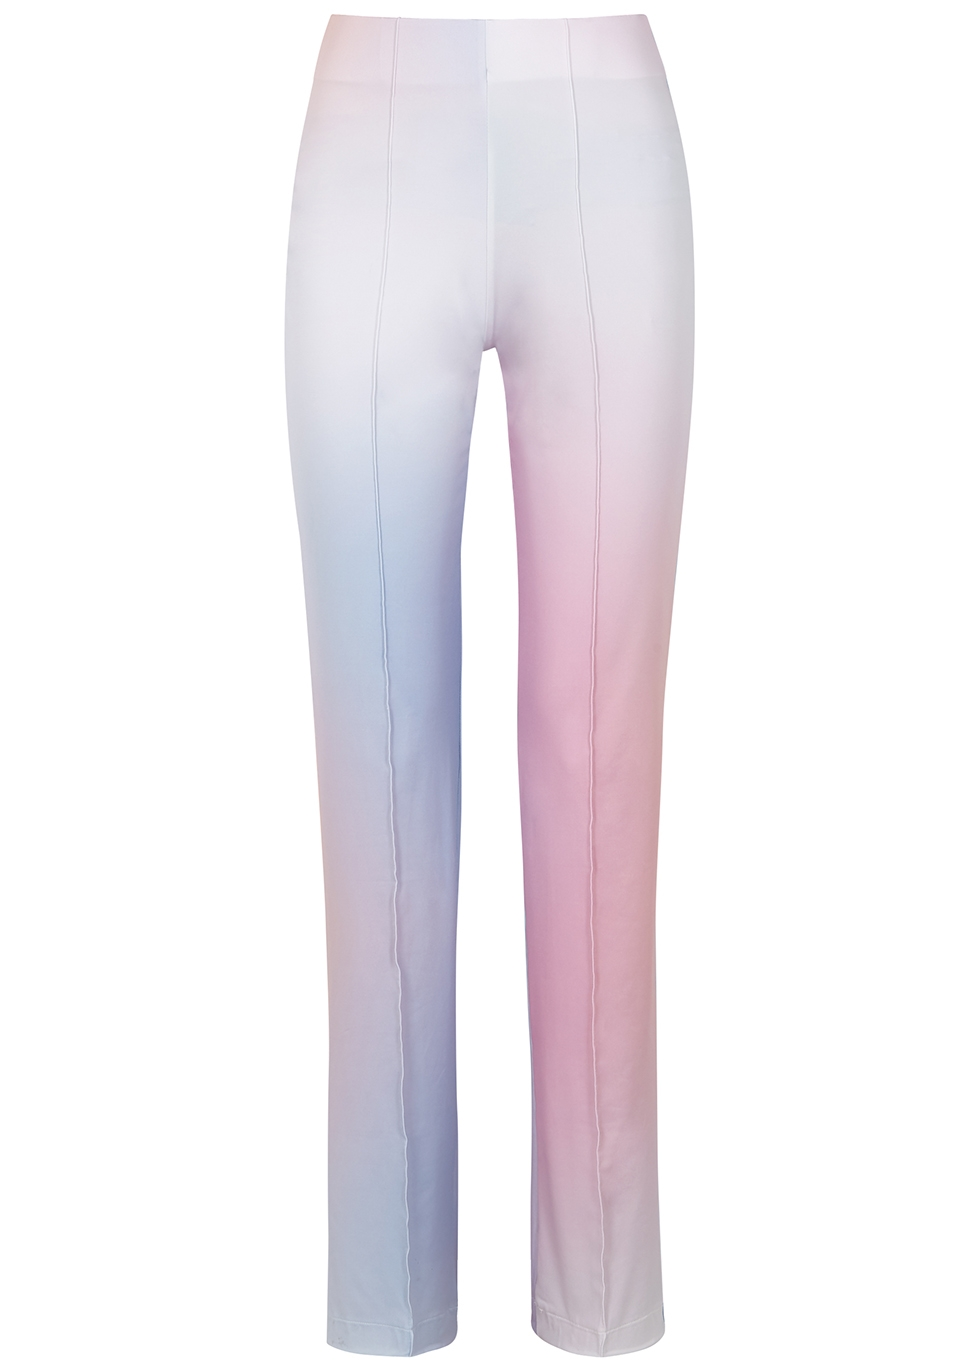 Lissi Pants by Saks Potts, available on harveynichols.com for $120 Kylie Jenner Pants Exact Product